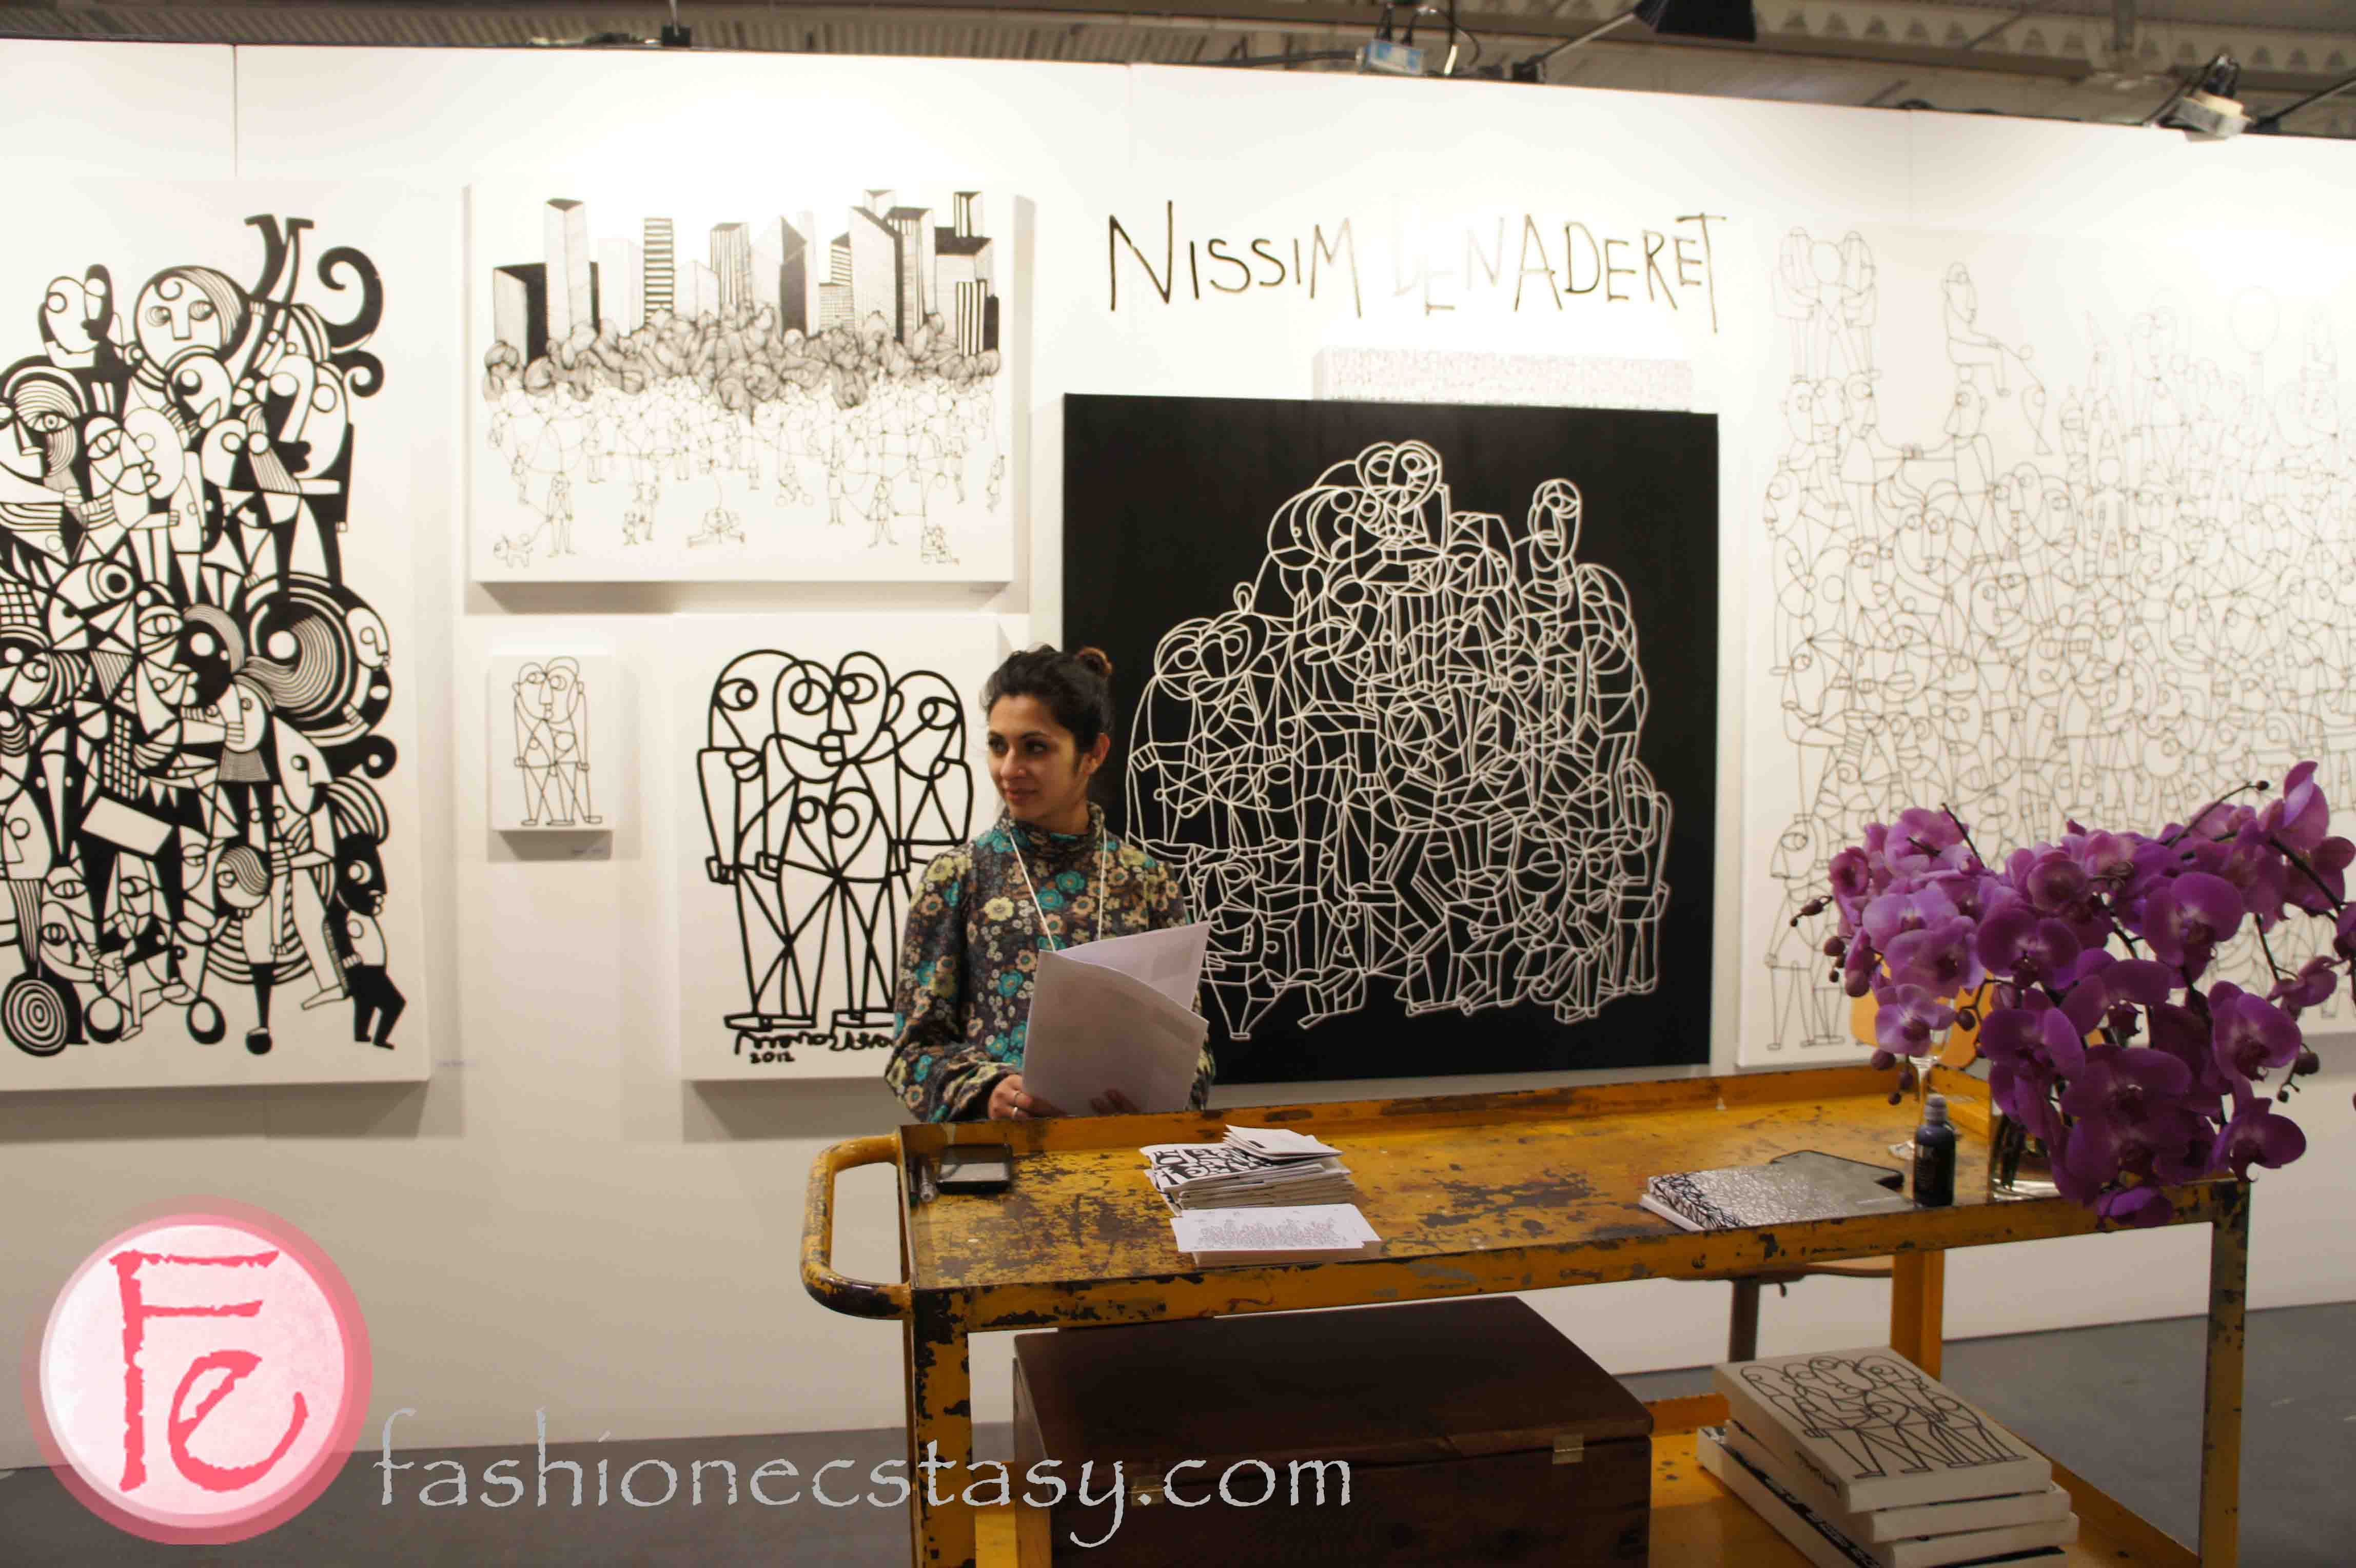 the artist project opening night preview party nissim benaderet published 23 2013 at 4592 × 3056 in